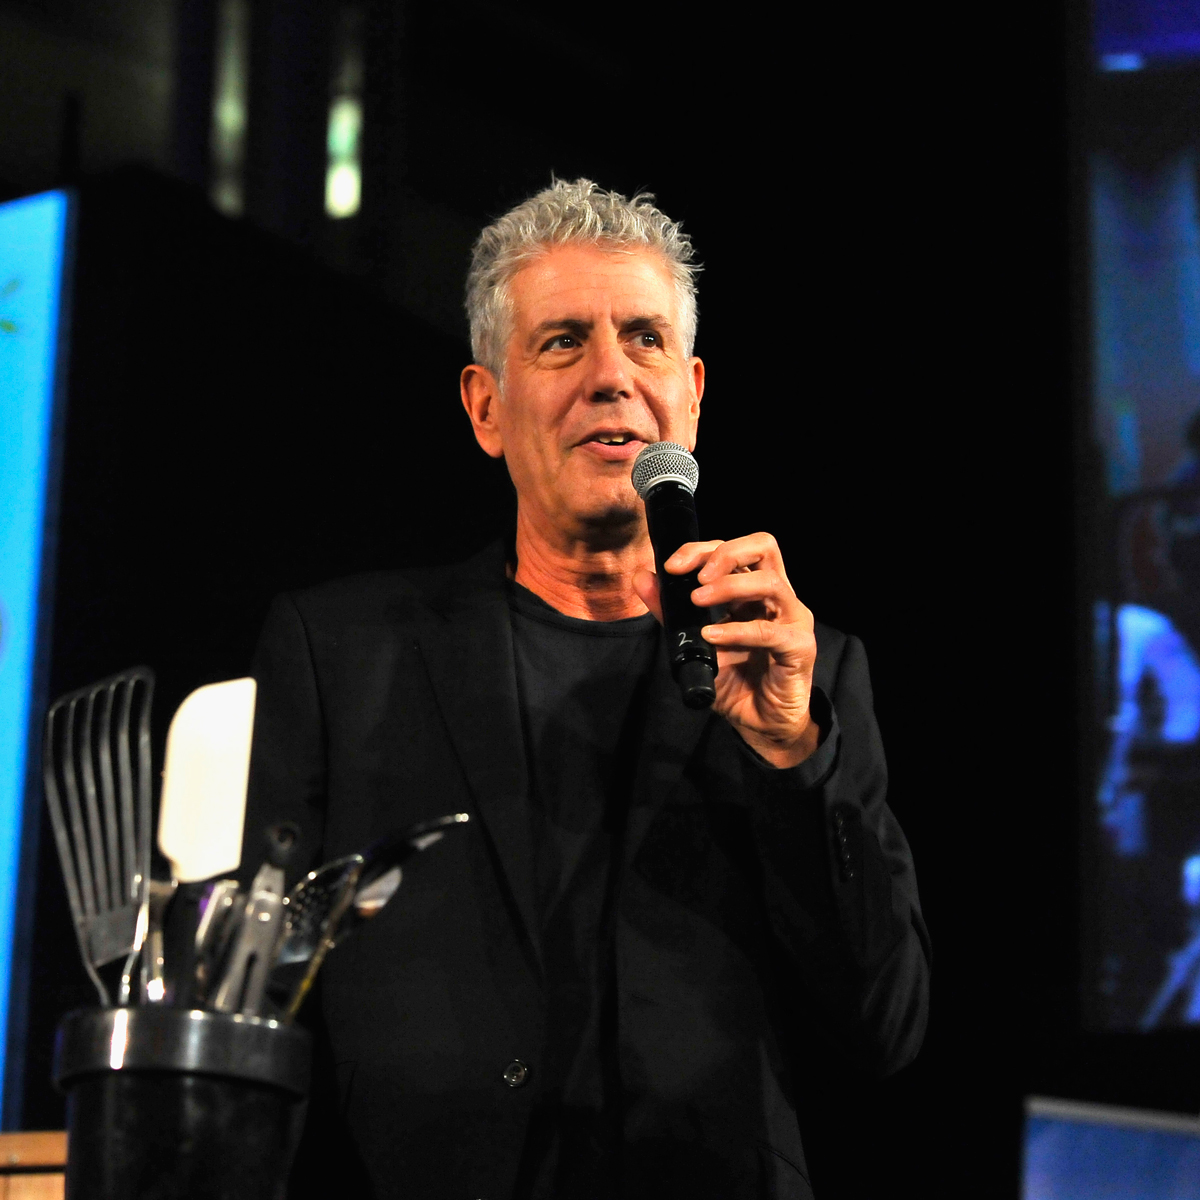 Anthony Bourdain Tour